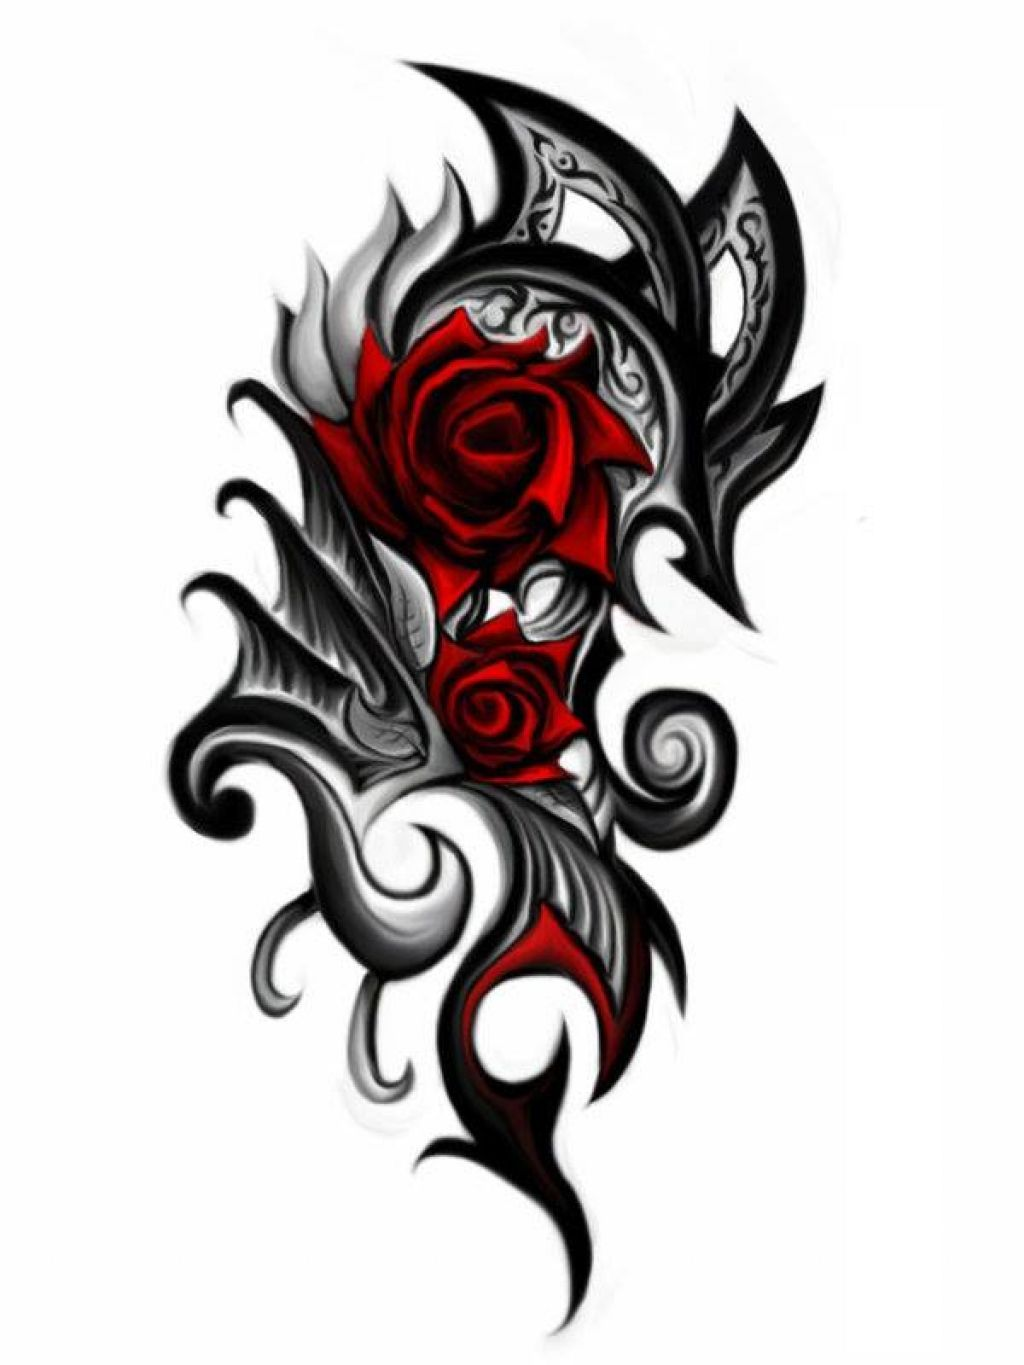 Tribal Rose Tattoo Designs For Men Intricate Modern Day Tattoo